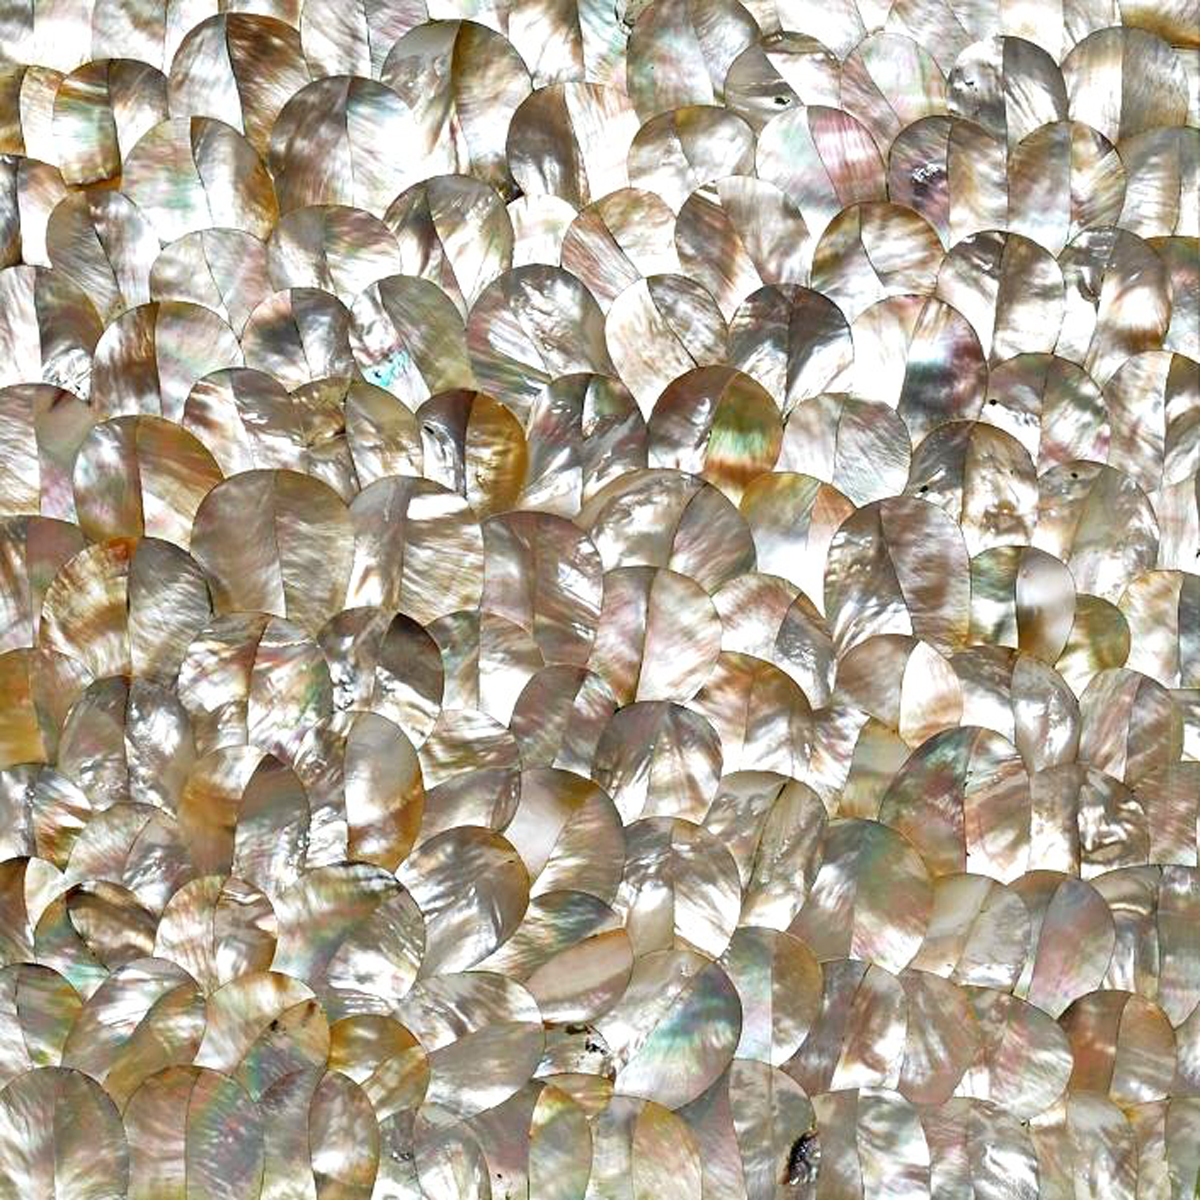 White Mother of Pearl Indian Plumage Seashell, 1 square foot